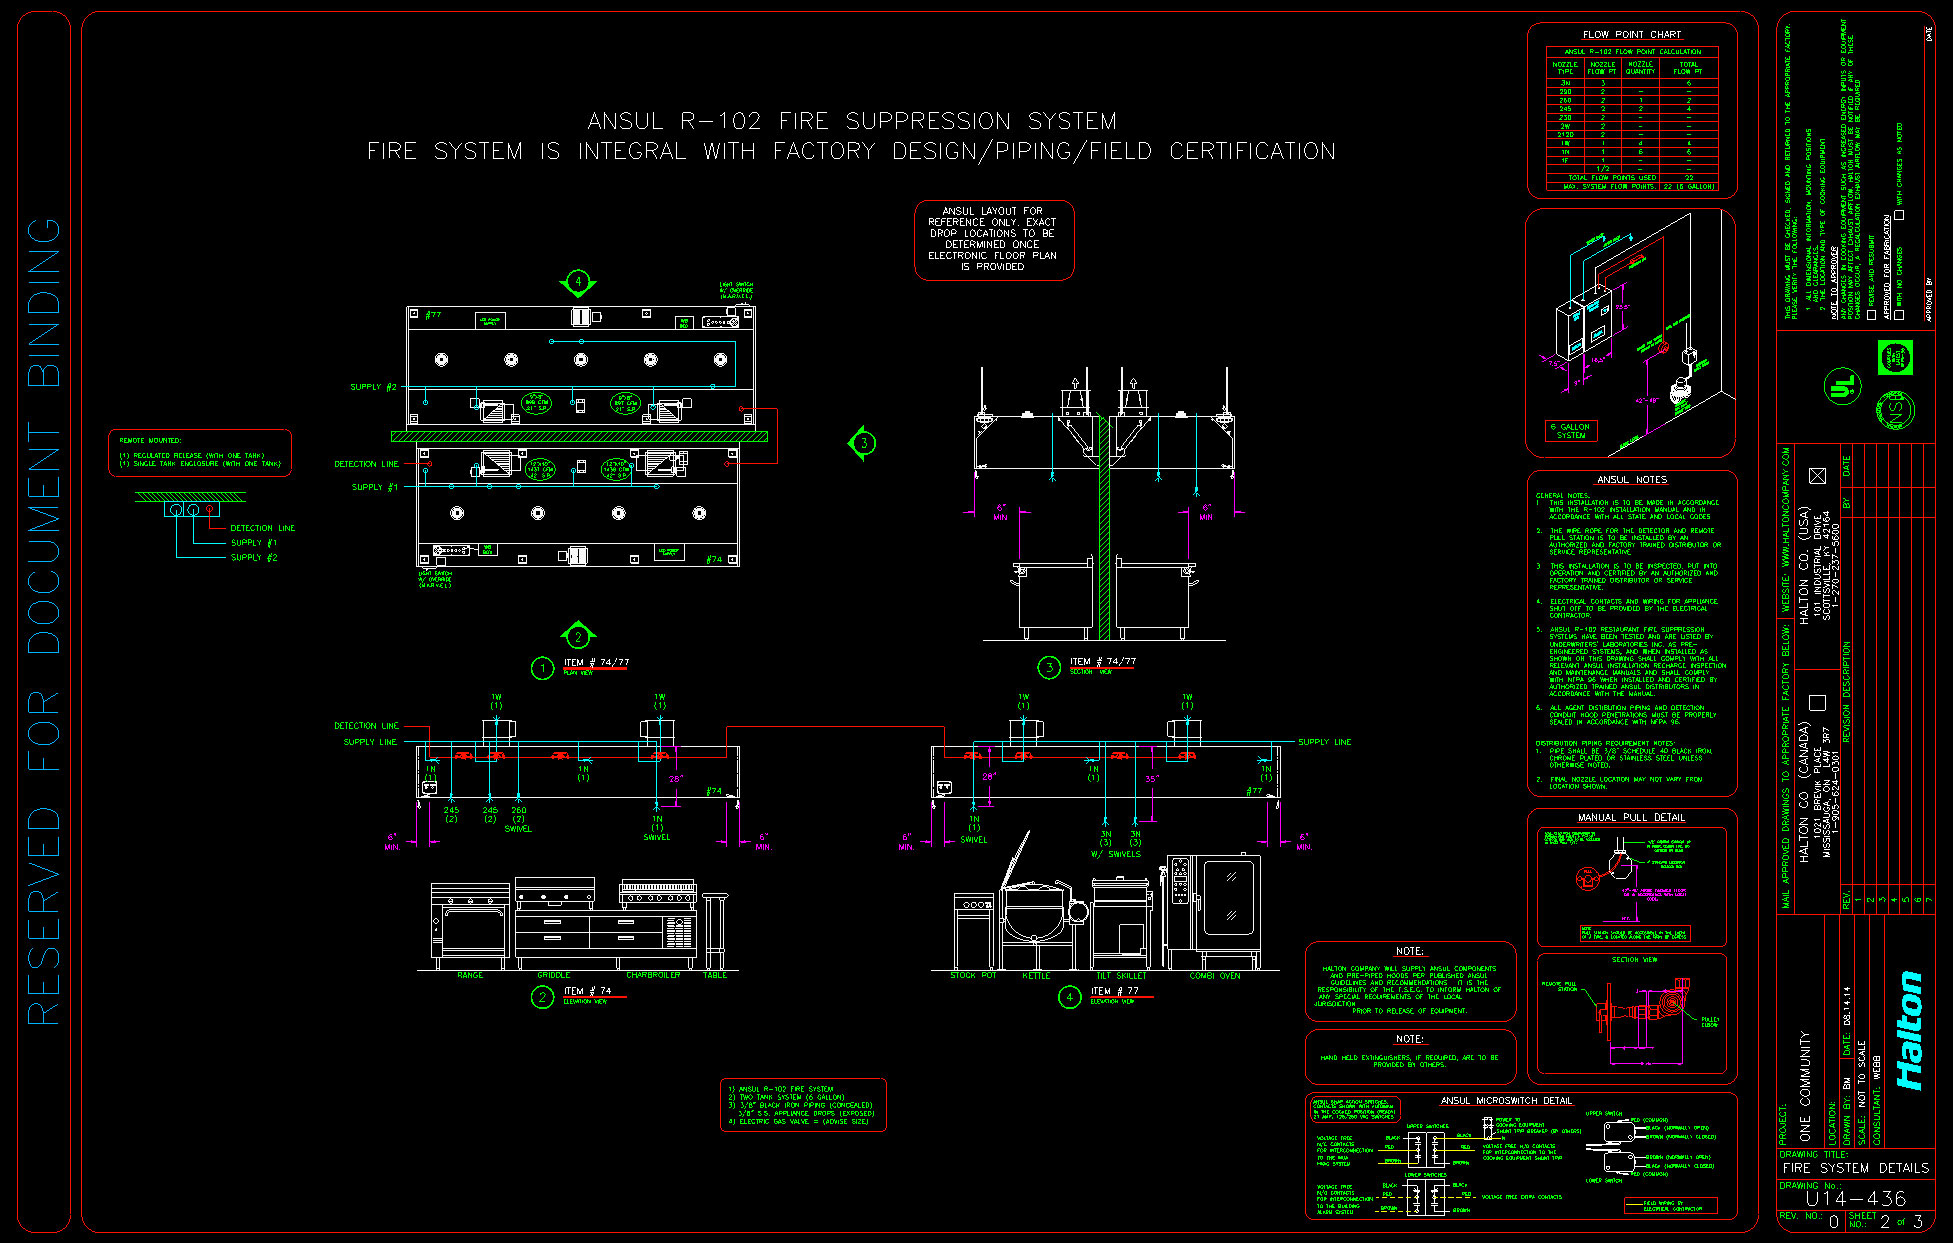 Fire Suppression System Cad Export on Line Design Layout